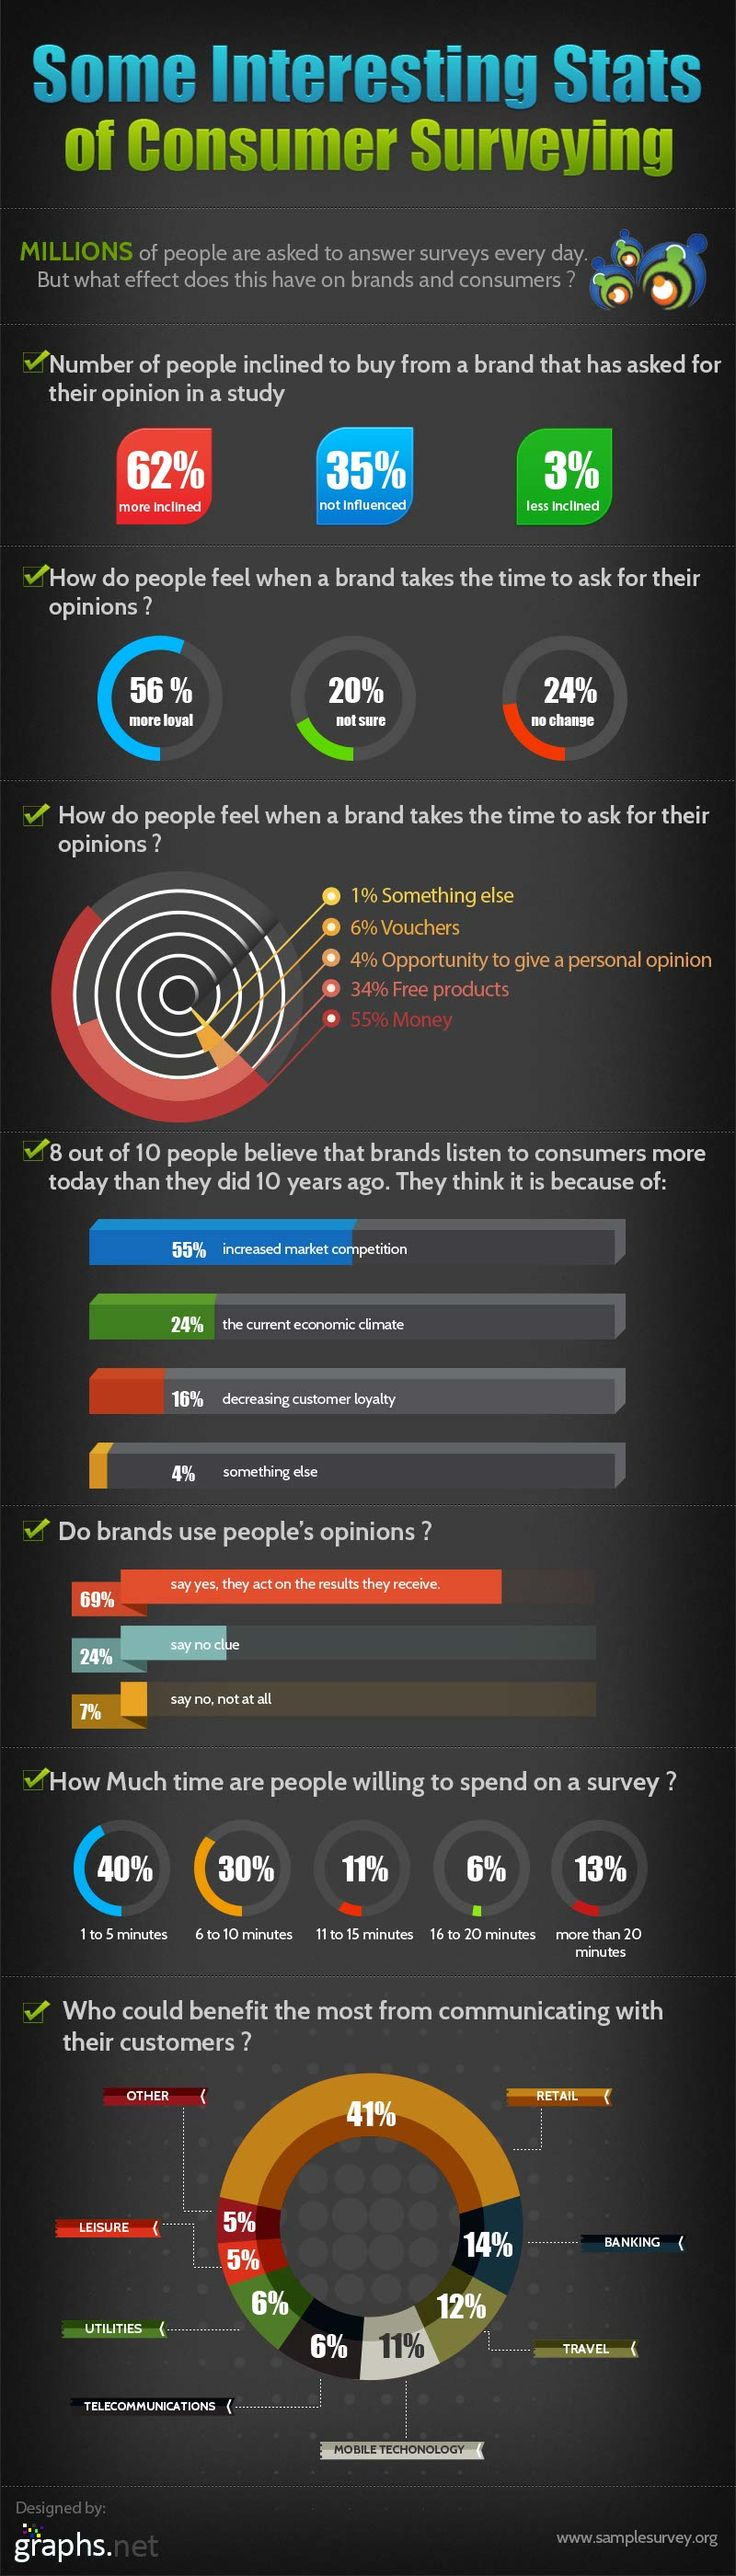 #INFOgraphic > Consumer Survey Power: 6 out of 10 people are directly or indirectly influenced during their purchase decision after participating in a survey conducted by a brand. This report from Sample Survey spotlights the impact of consumer surveys on both brands and consumers.  > http://infographicsmania.com/consumer-survey-power/